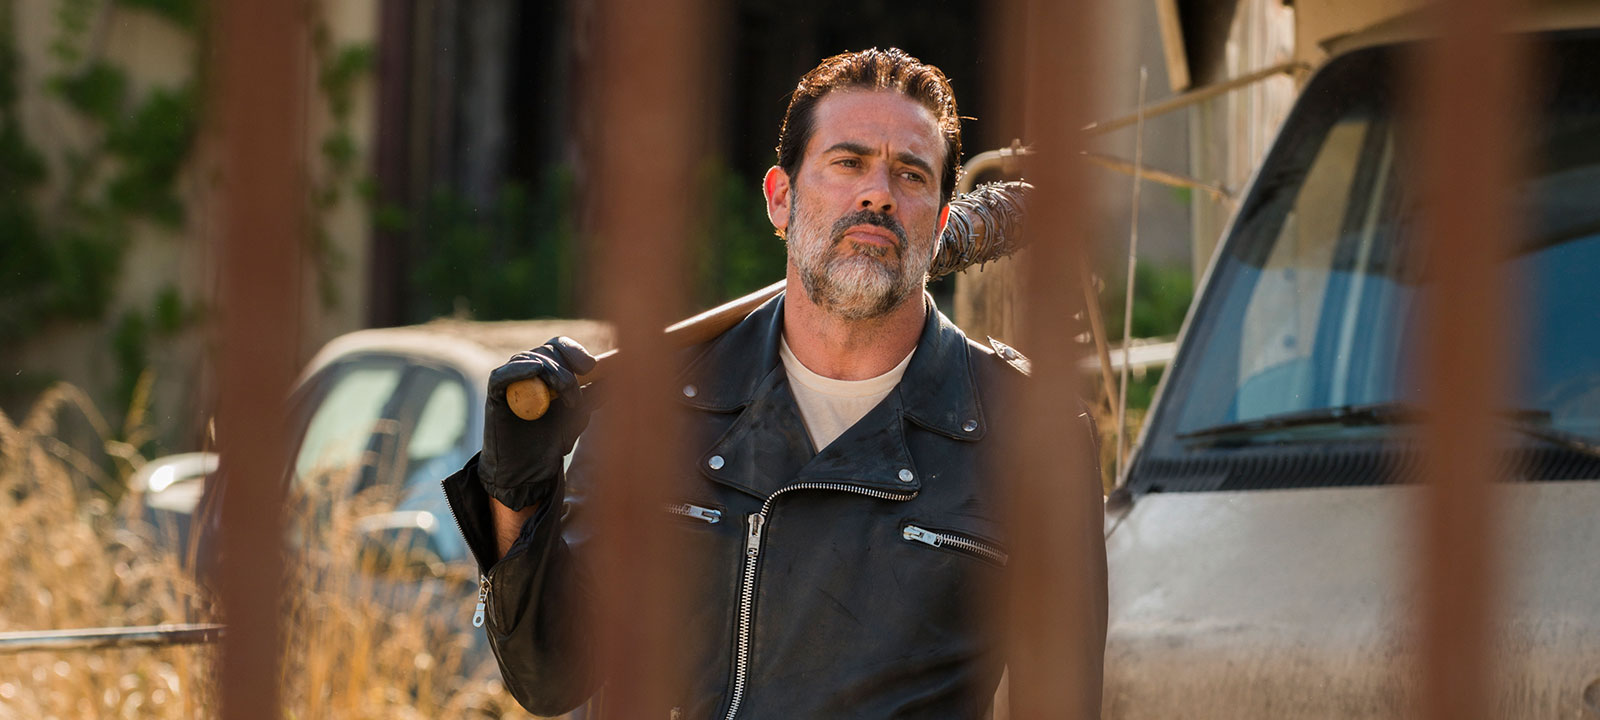 the-walking-dead-season-7-negan-morgan-800×600-photos-1